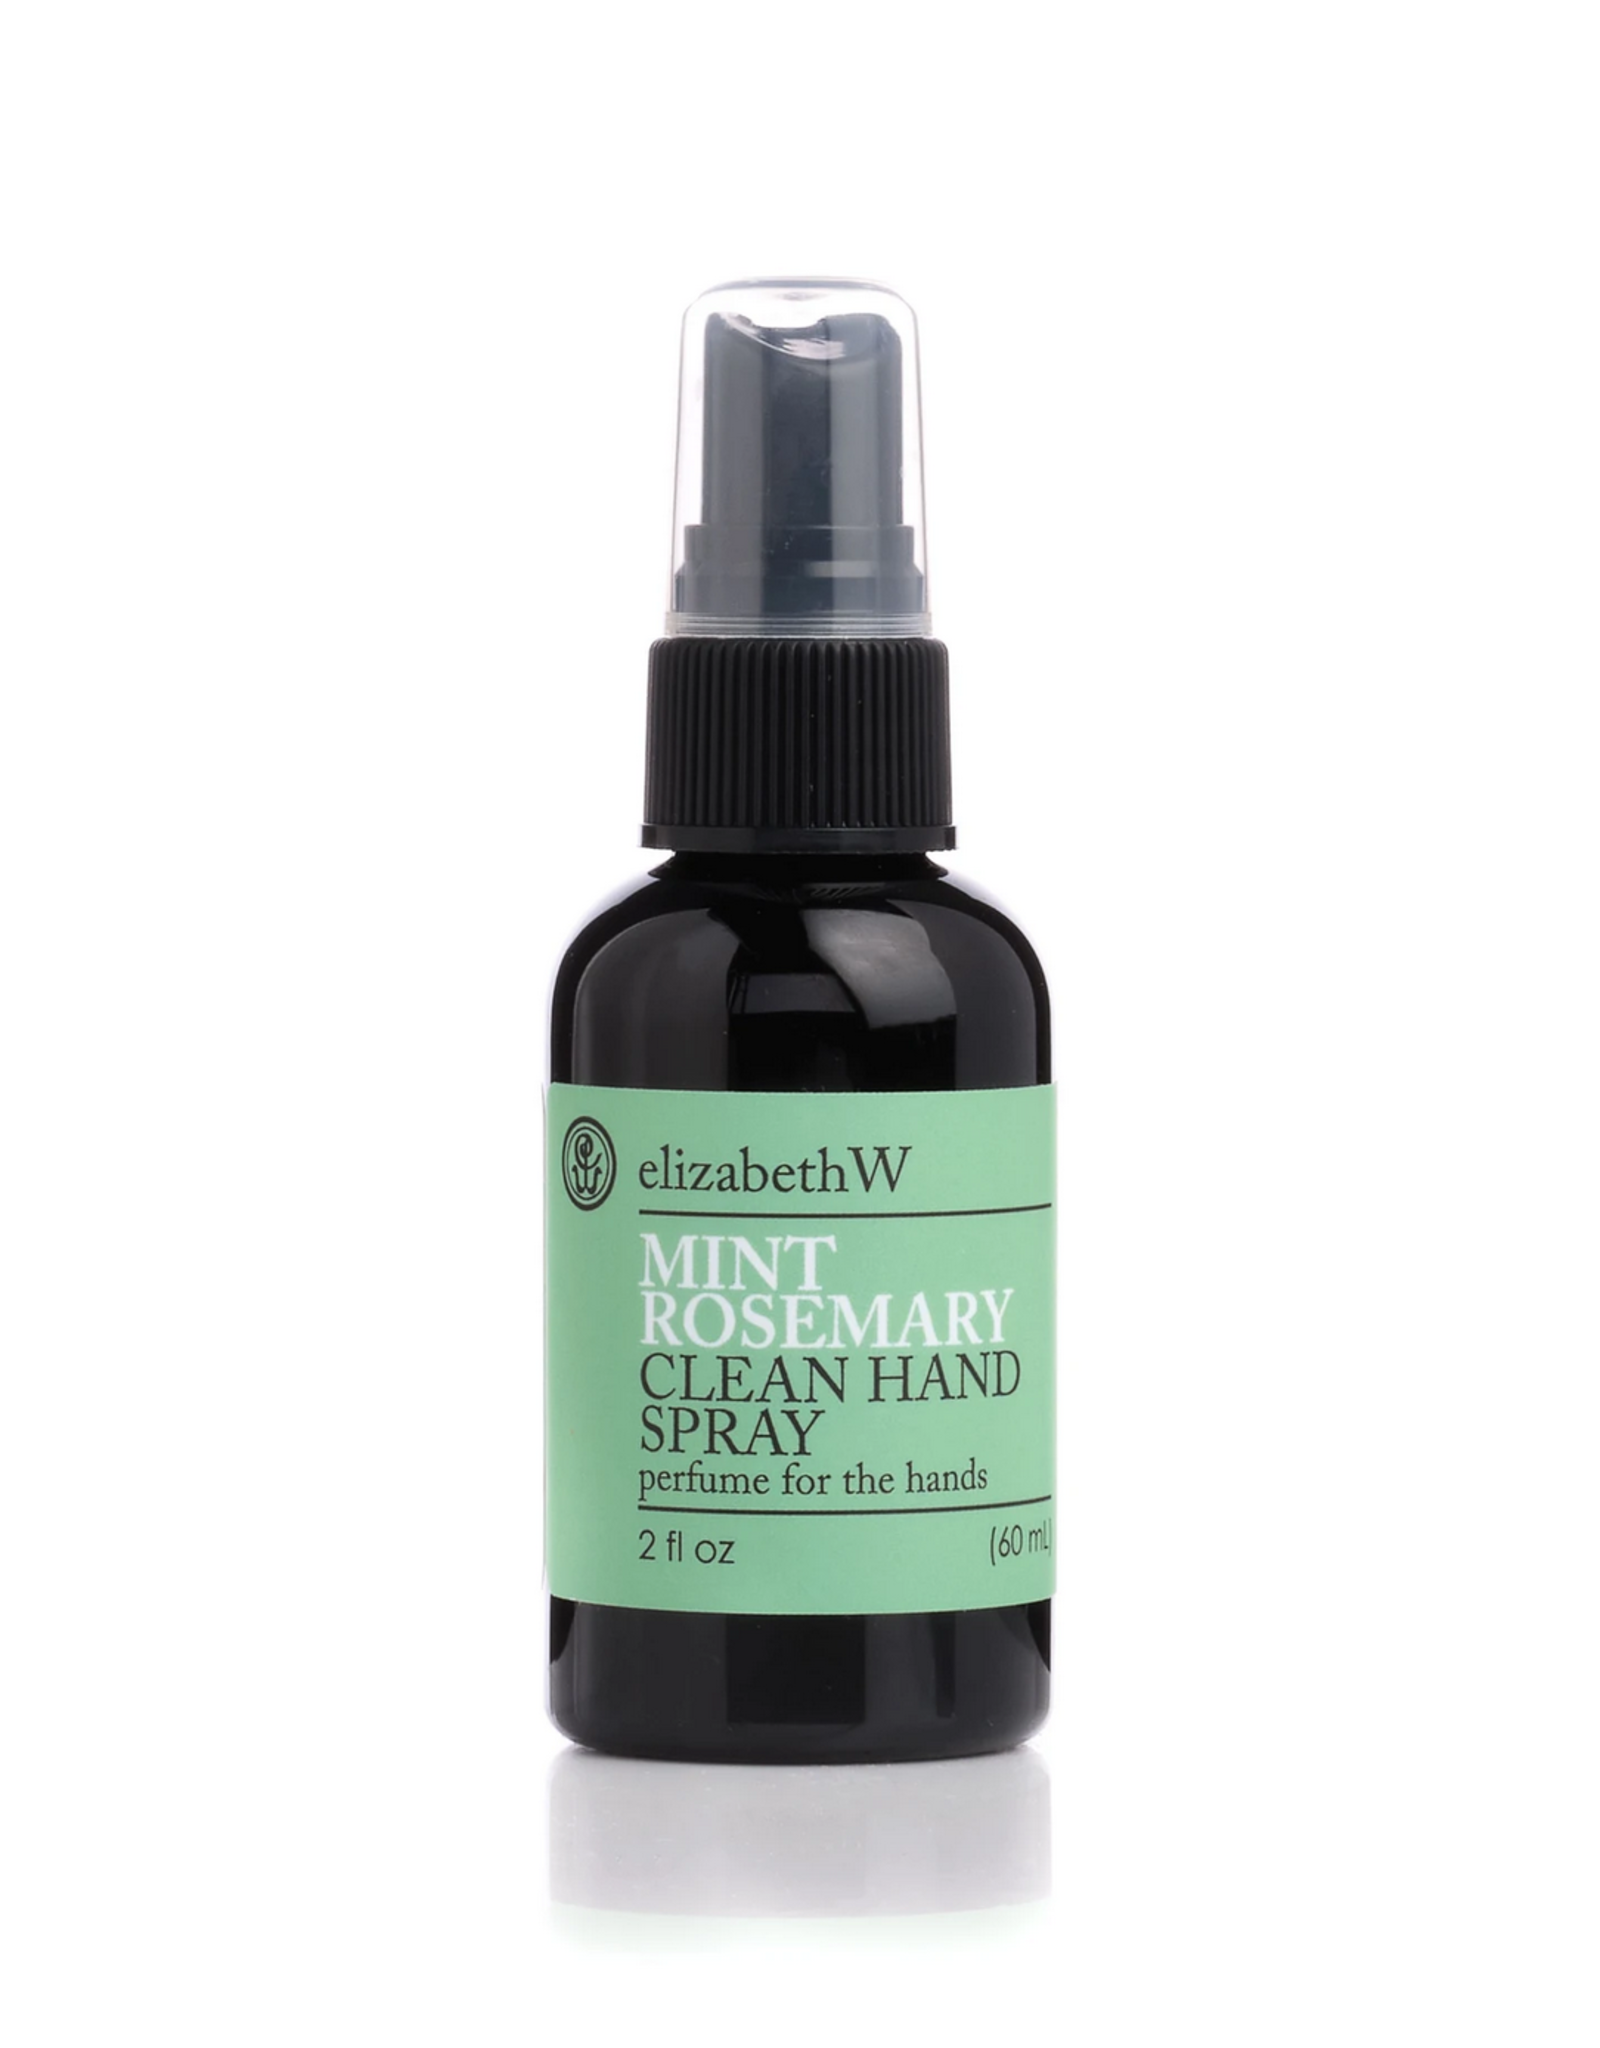 ELIZABETH W Mint Rosemary Hand Spray- 2 oz